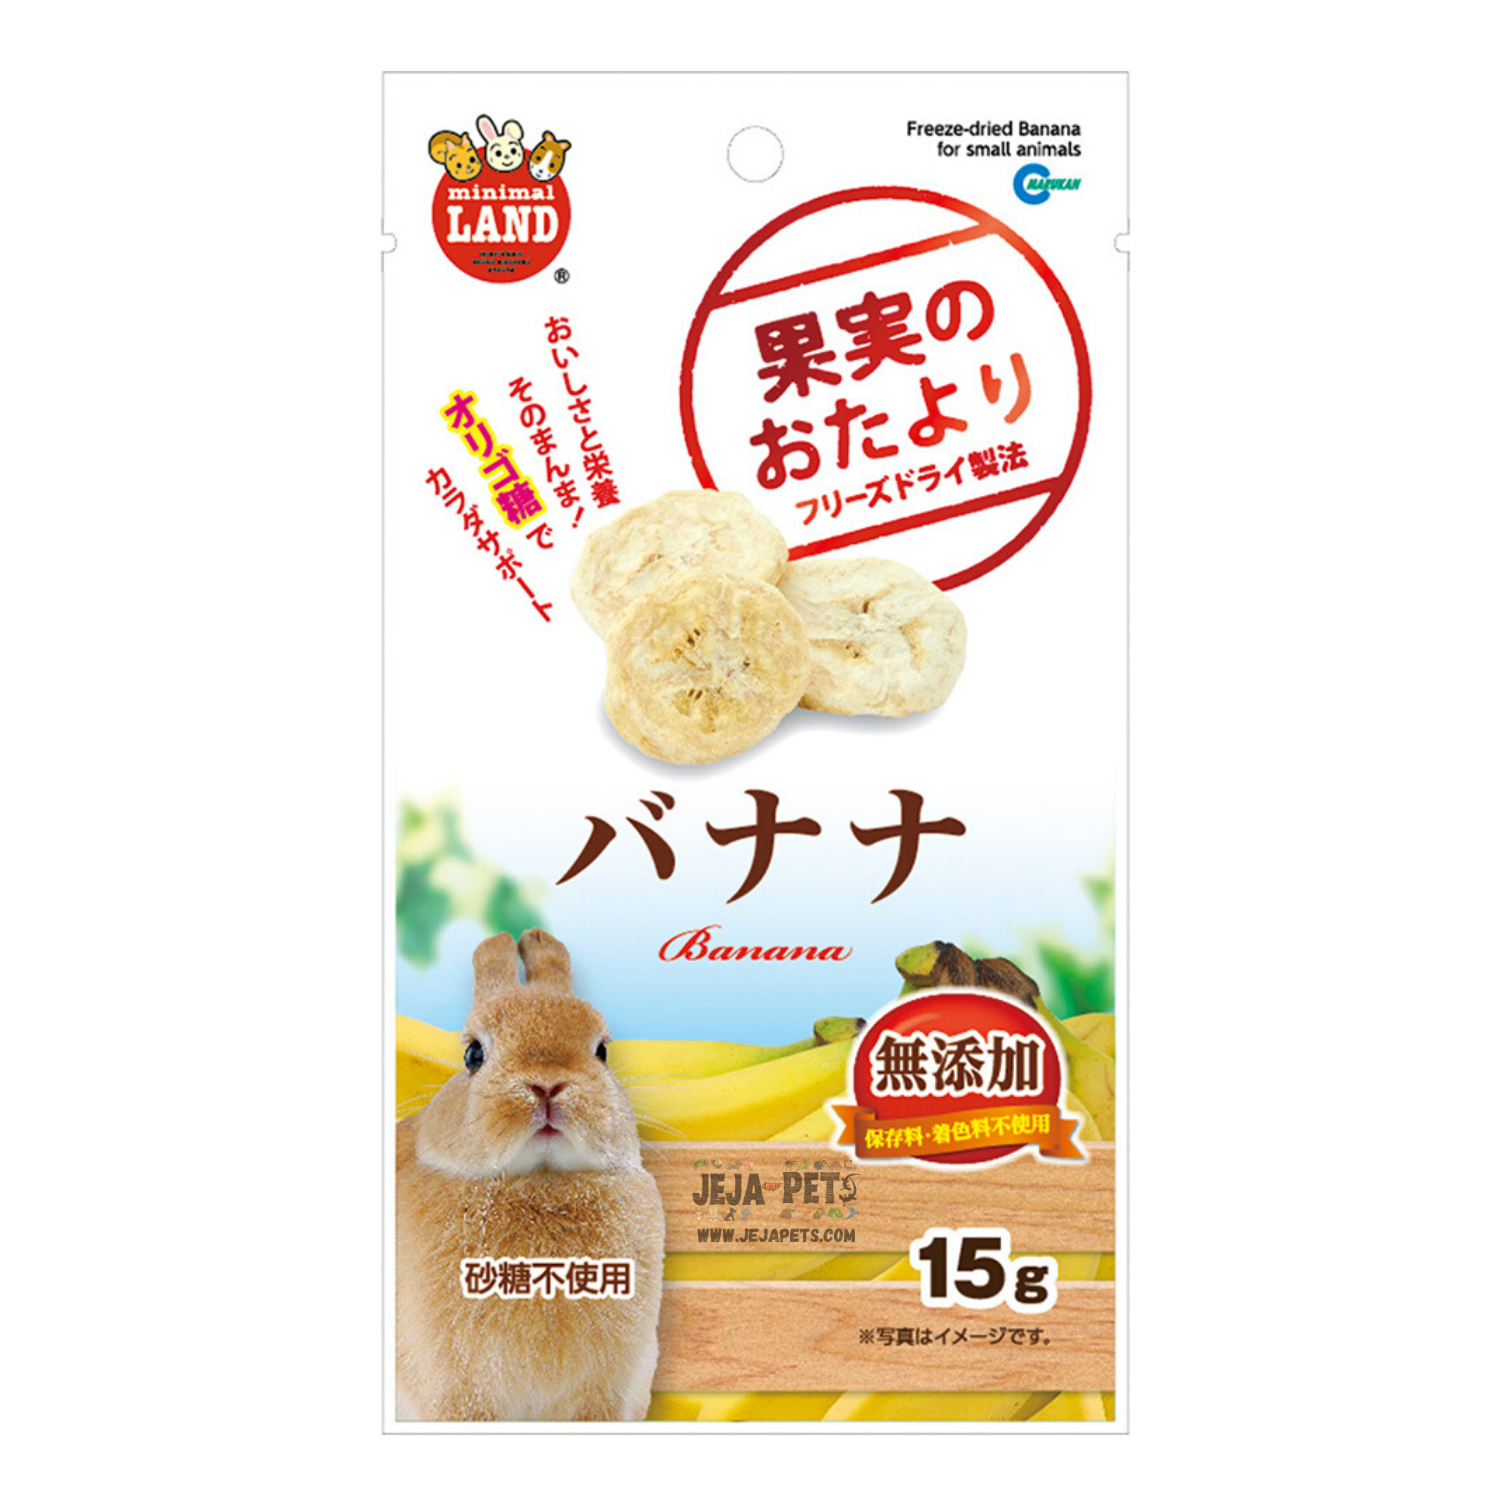 Marukan Freeze Dried Banana for Small Animals - 15g